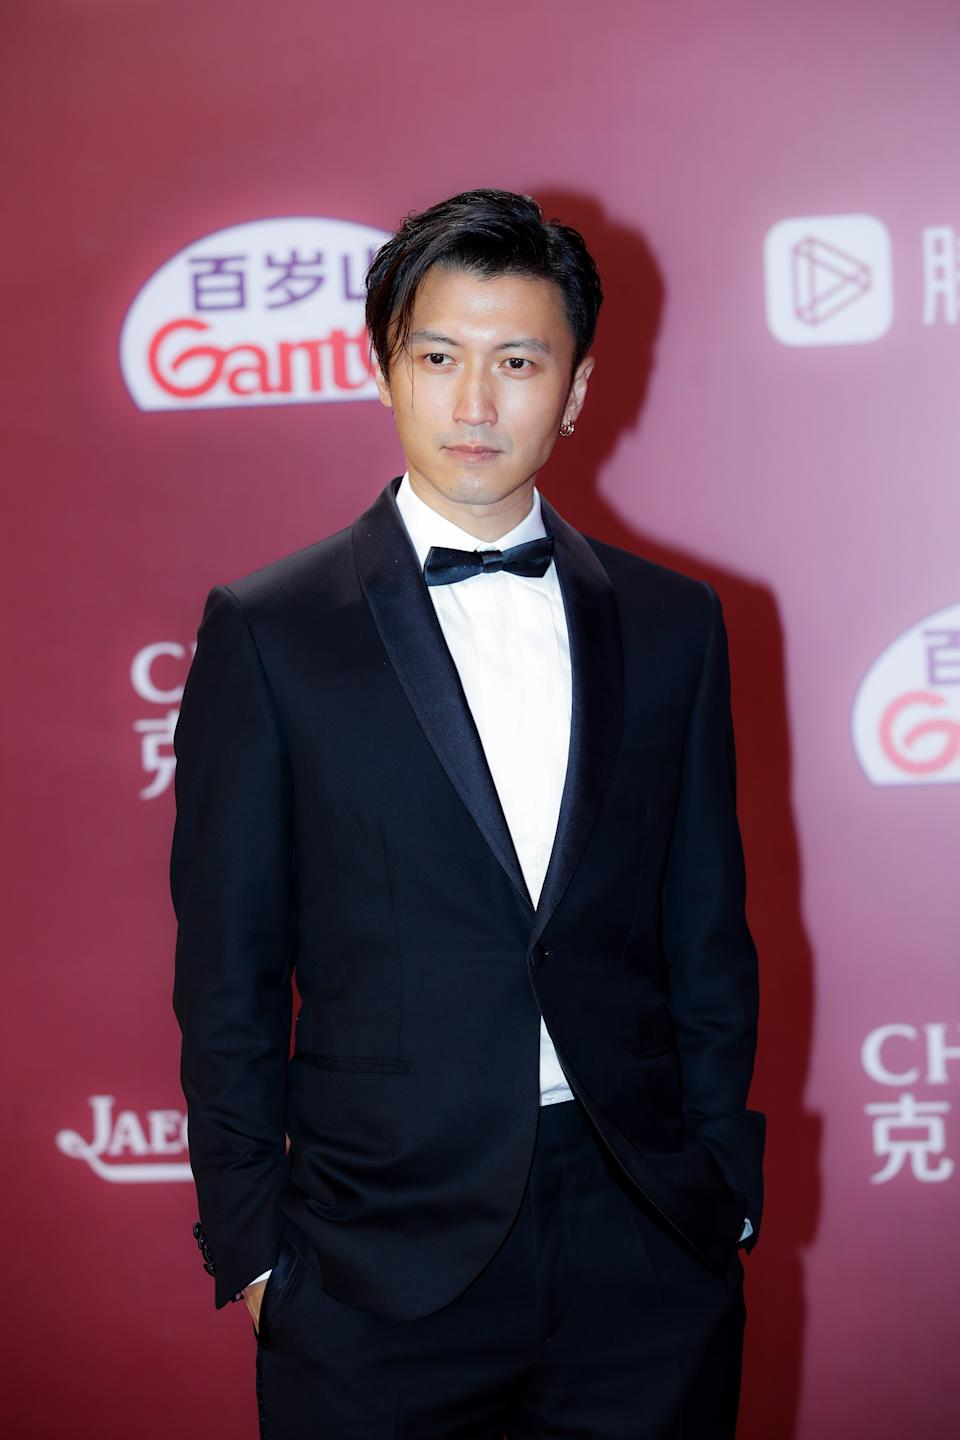 SHANGHAI, CHINA - JUNE 11: Actor Nicholas Tse Ting-fung attends opening ceremony of the 24th Shanghai International Film Festival at Shanghai Grand Theatre on June 11, 2021 in Shanghai, China. (Photo by VCG/VCG via Getty Images)